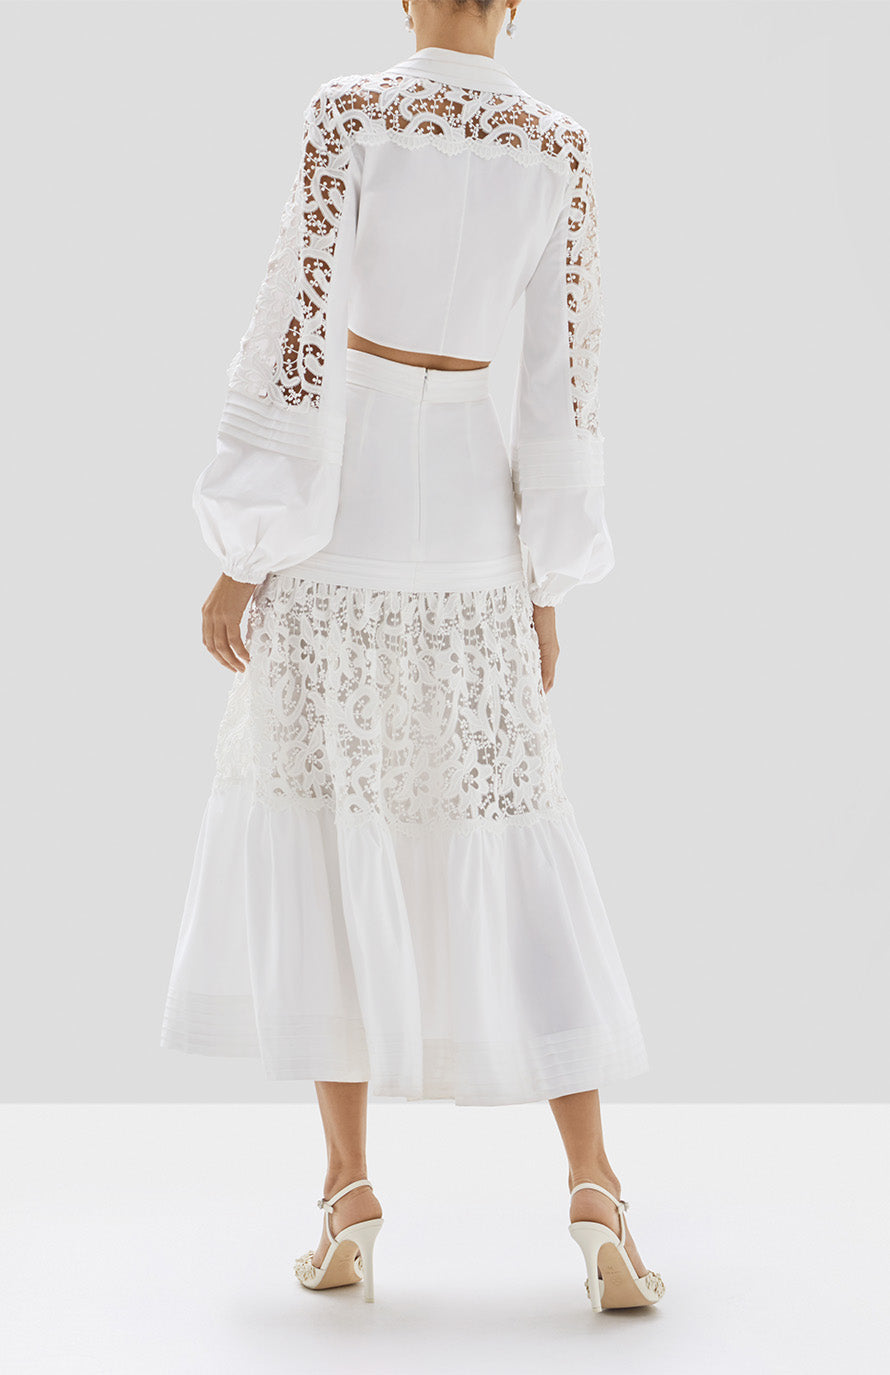 Alexis Toilan Top and Gwenda Skirt in White from our Pre Spring 2020 Ready To Wear Collection.  - Rear View